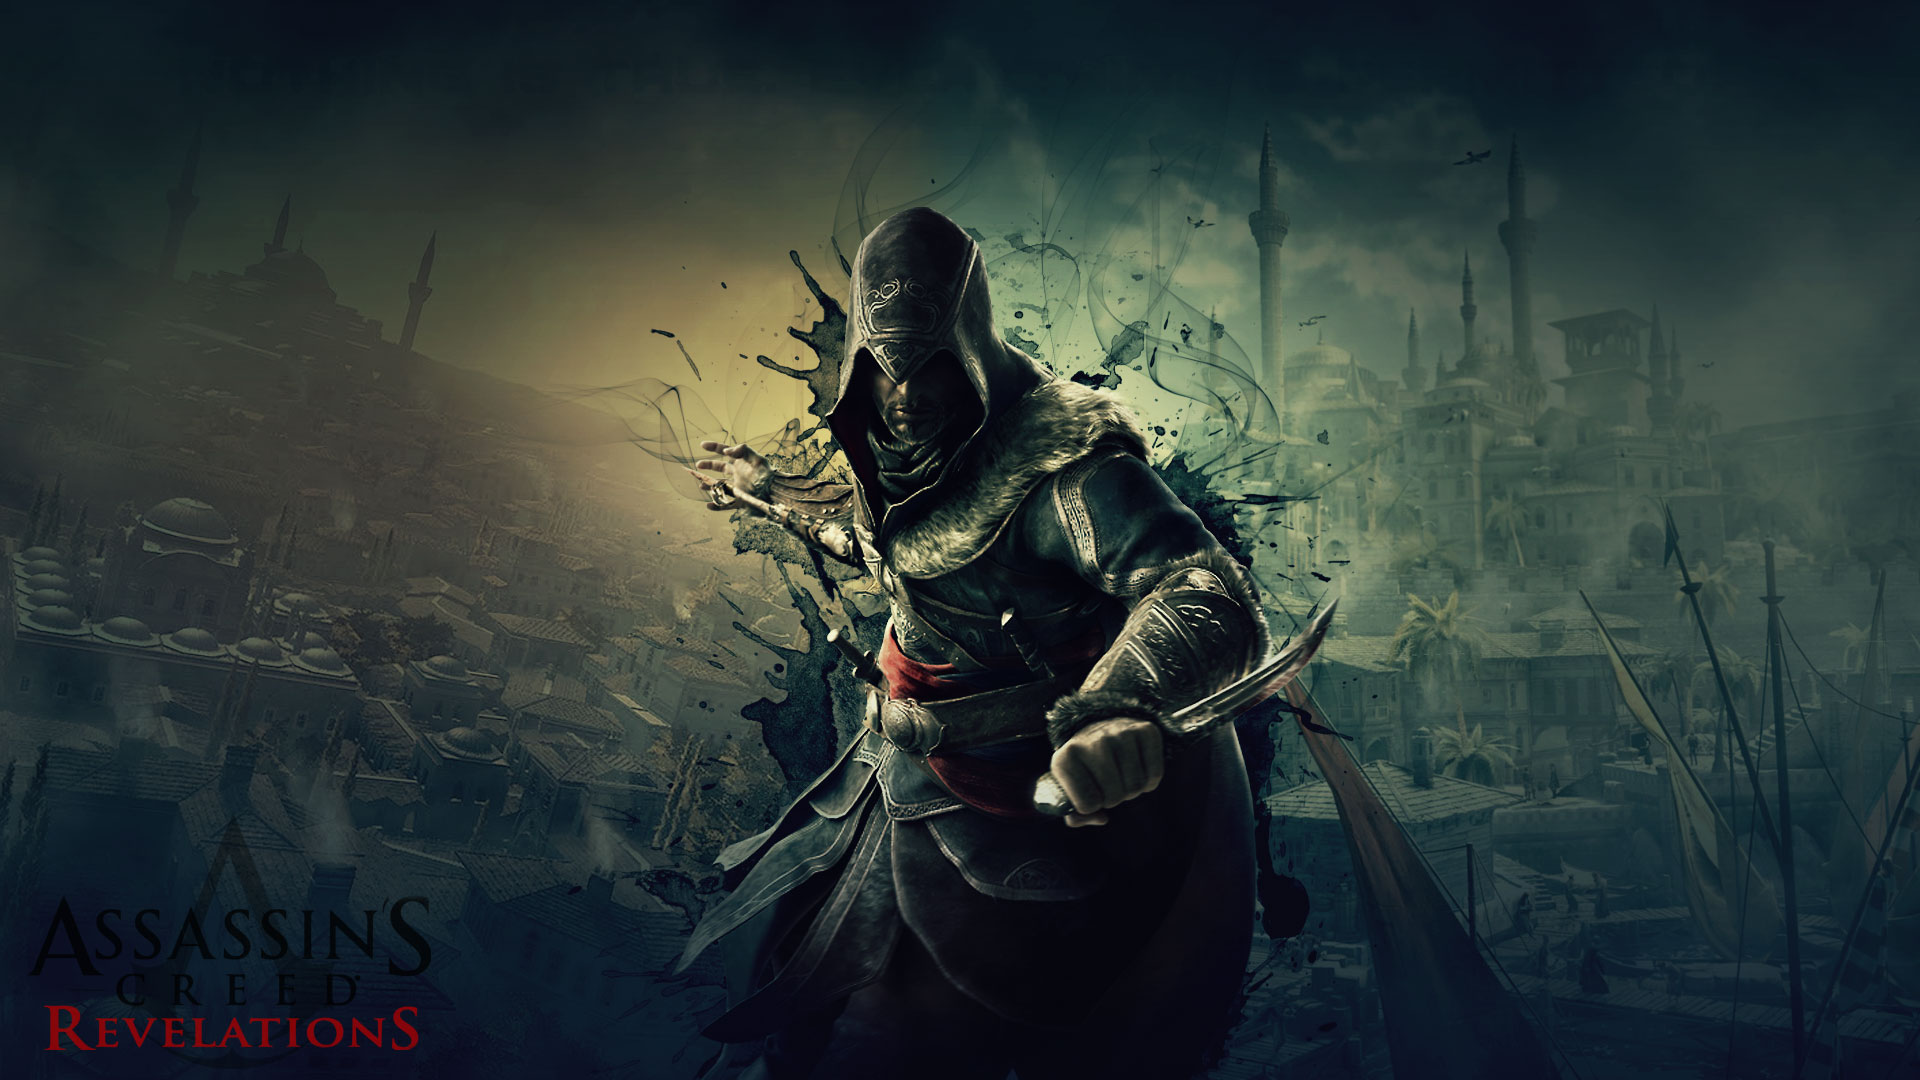 Assassins Creed Revelations The Assassins Wallpaper